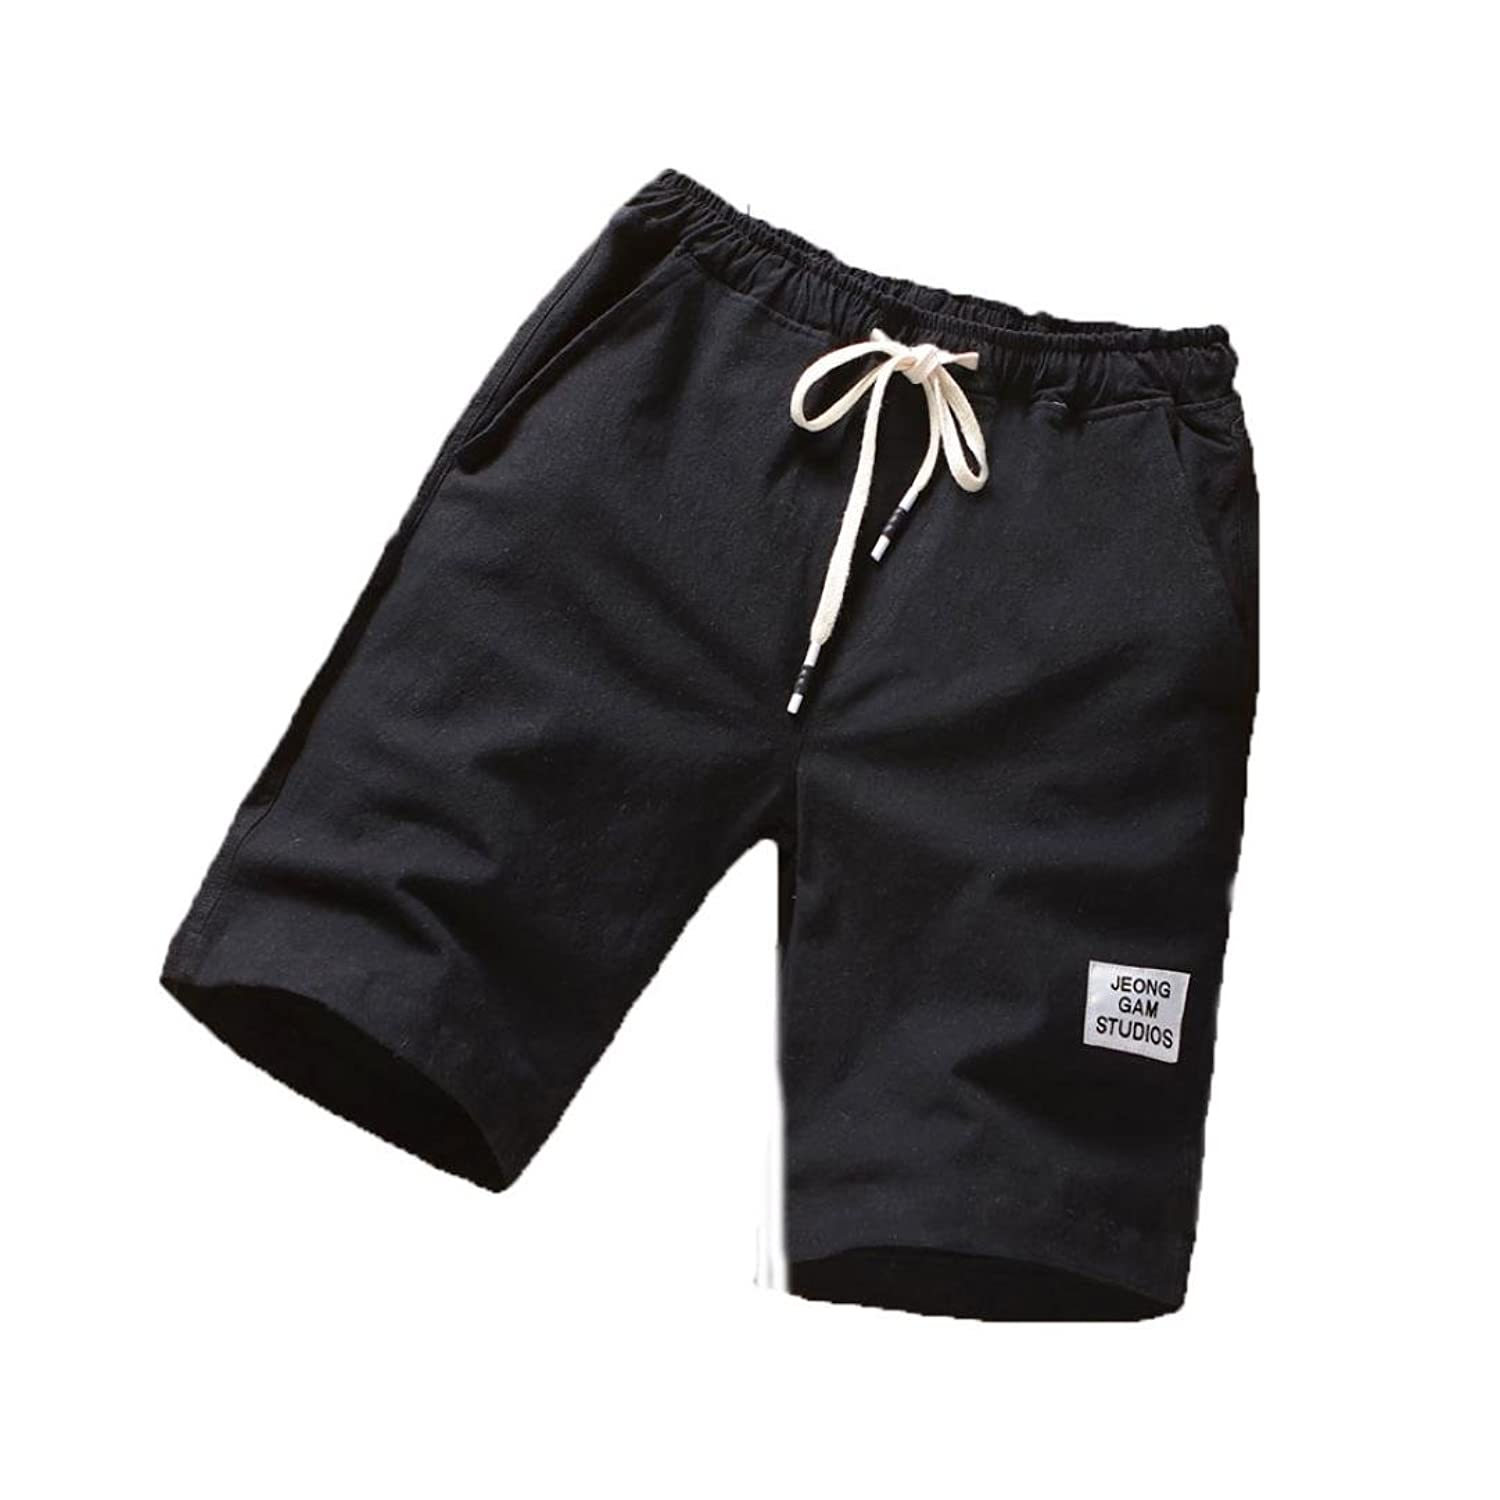 2b033f0697 water repellent technology dries fast and resists fading, suitable for  swimming, Beach vacation, shorts leisure ,Beach pants, surf pants, all the  weather ...